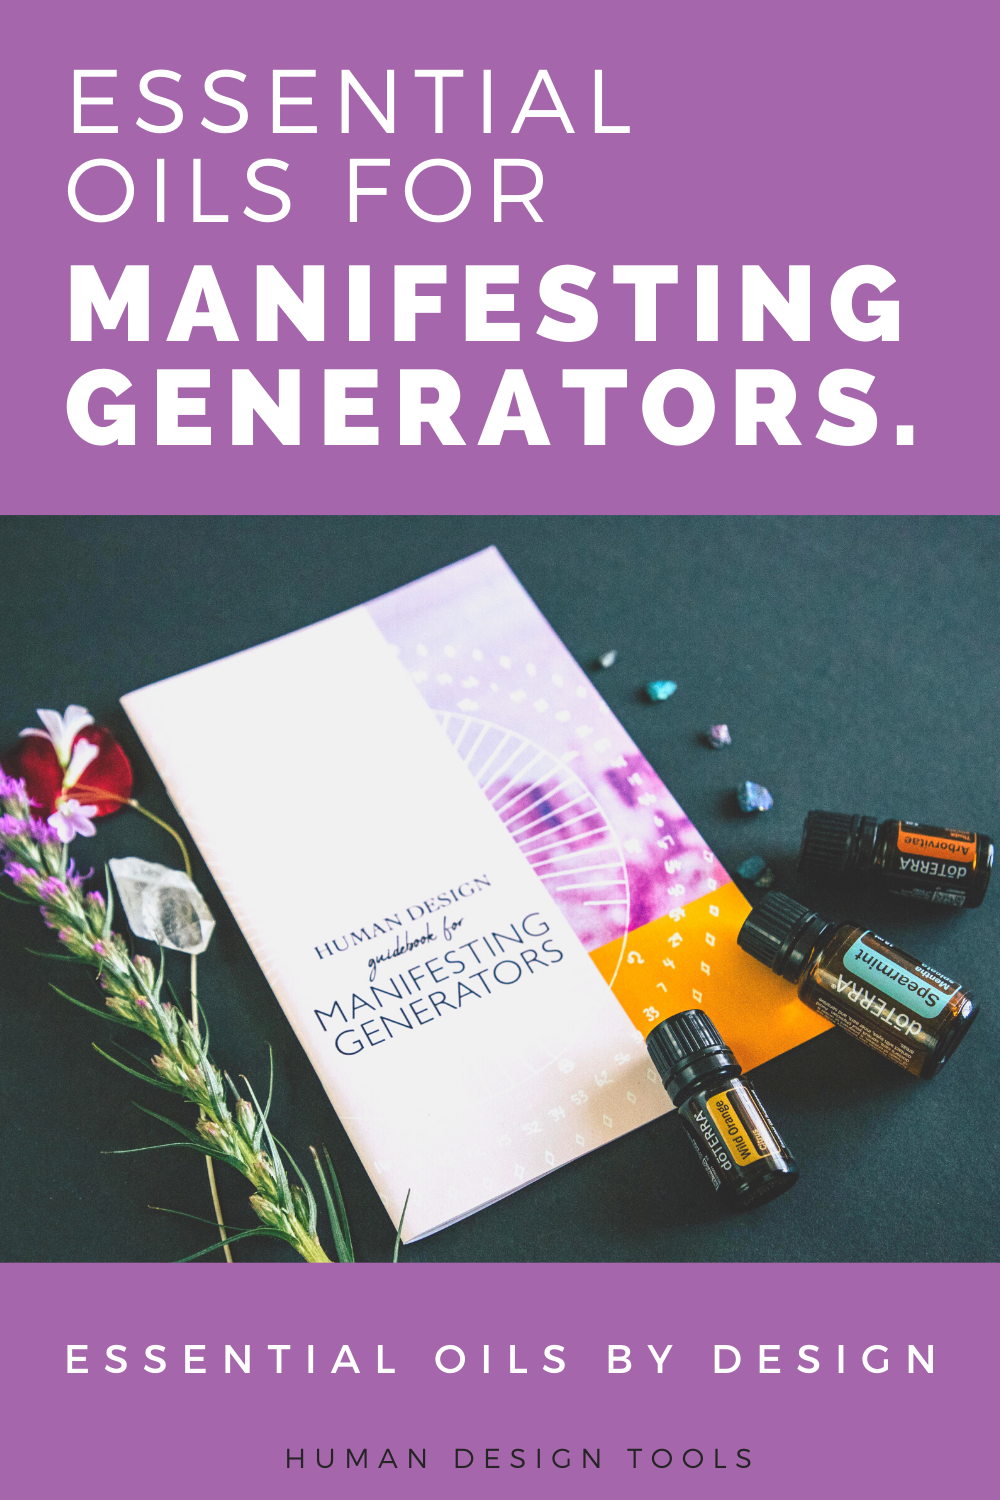 Essential Oils by Design for Manifesting Generators